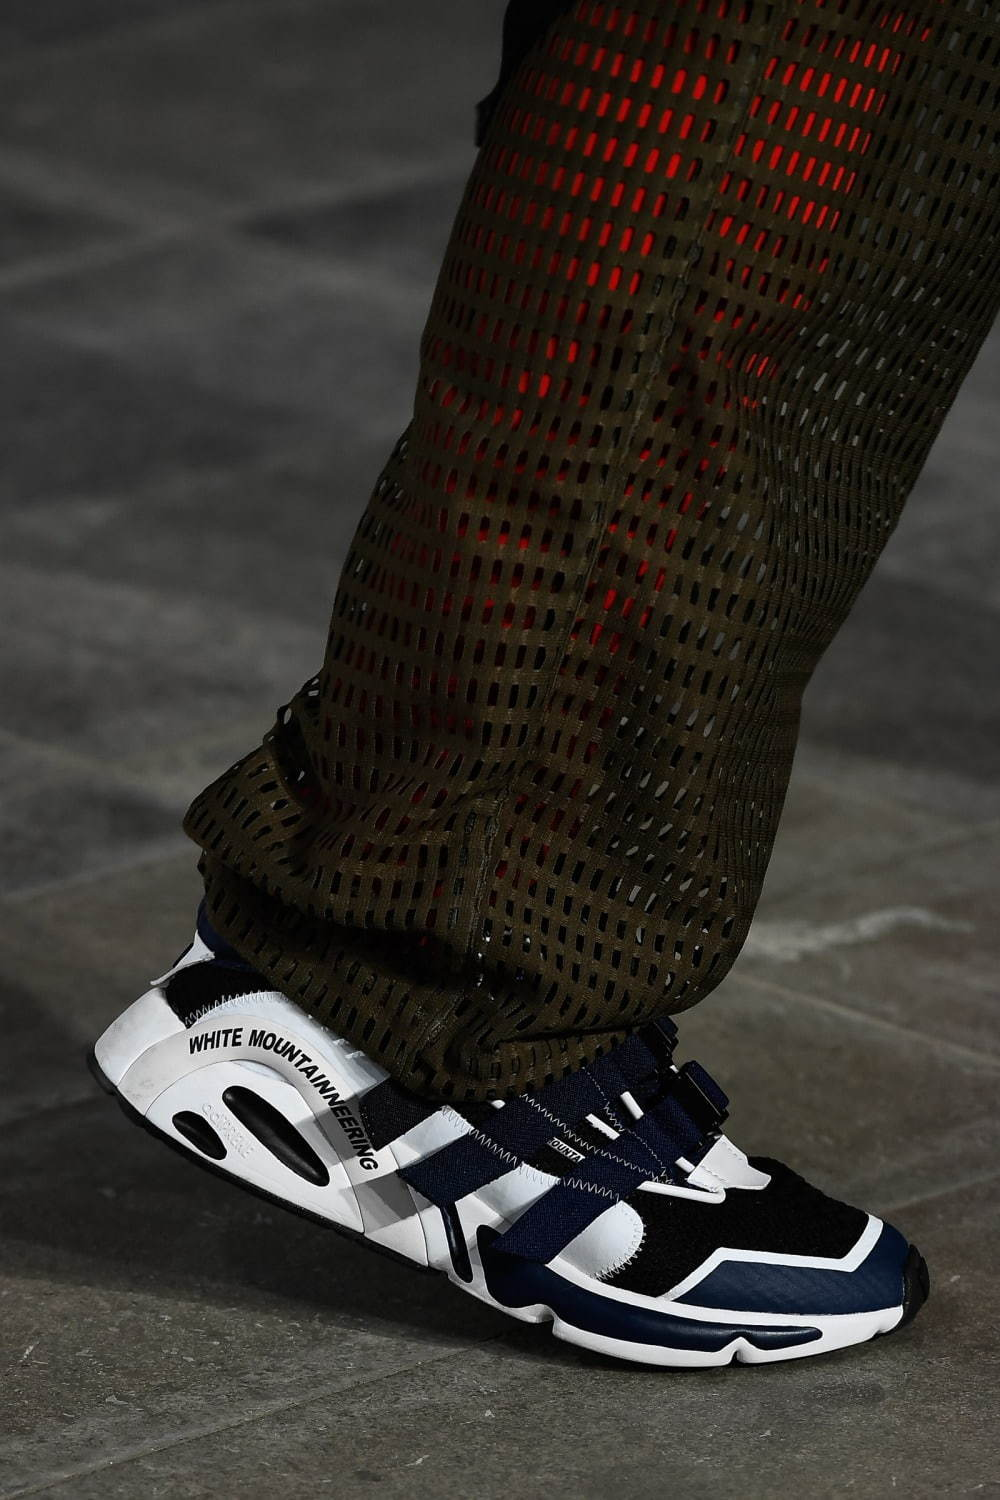 White Mountaineering - 2020 S/S Collection._f0020773_1844018.jpg